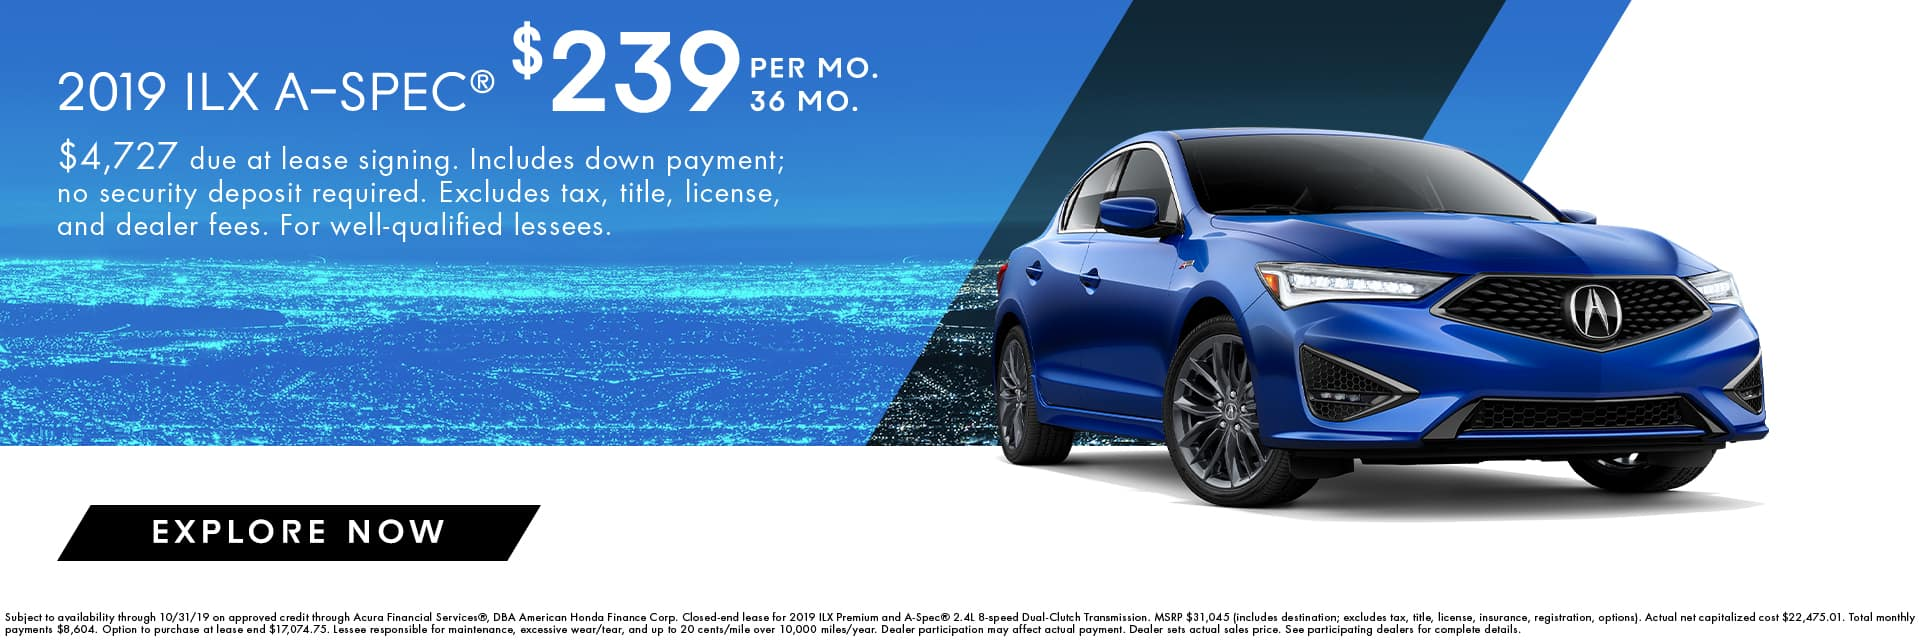 ILX offer 1920x640